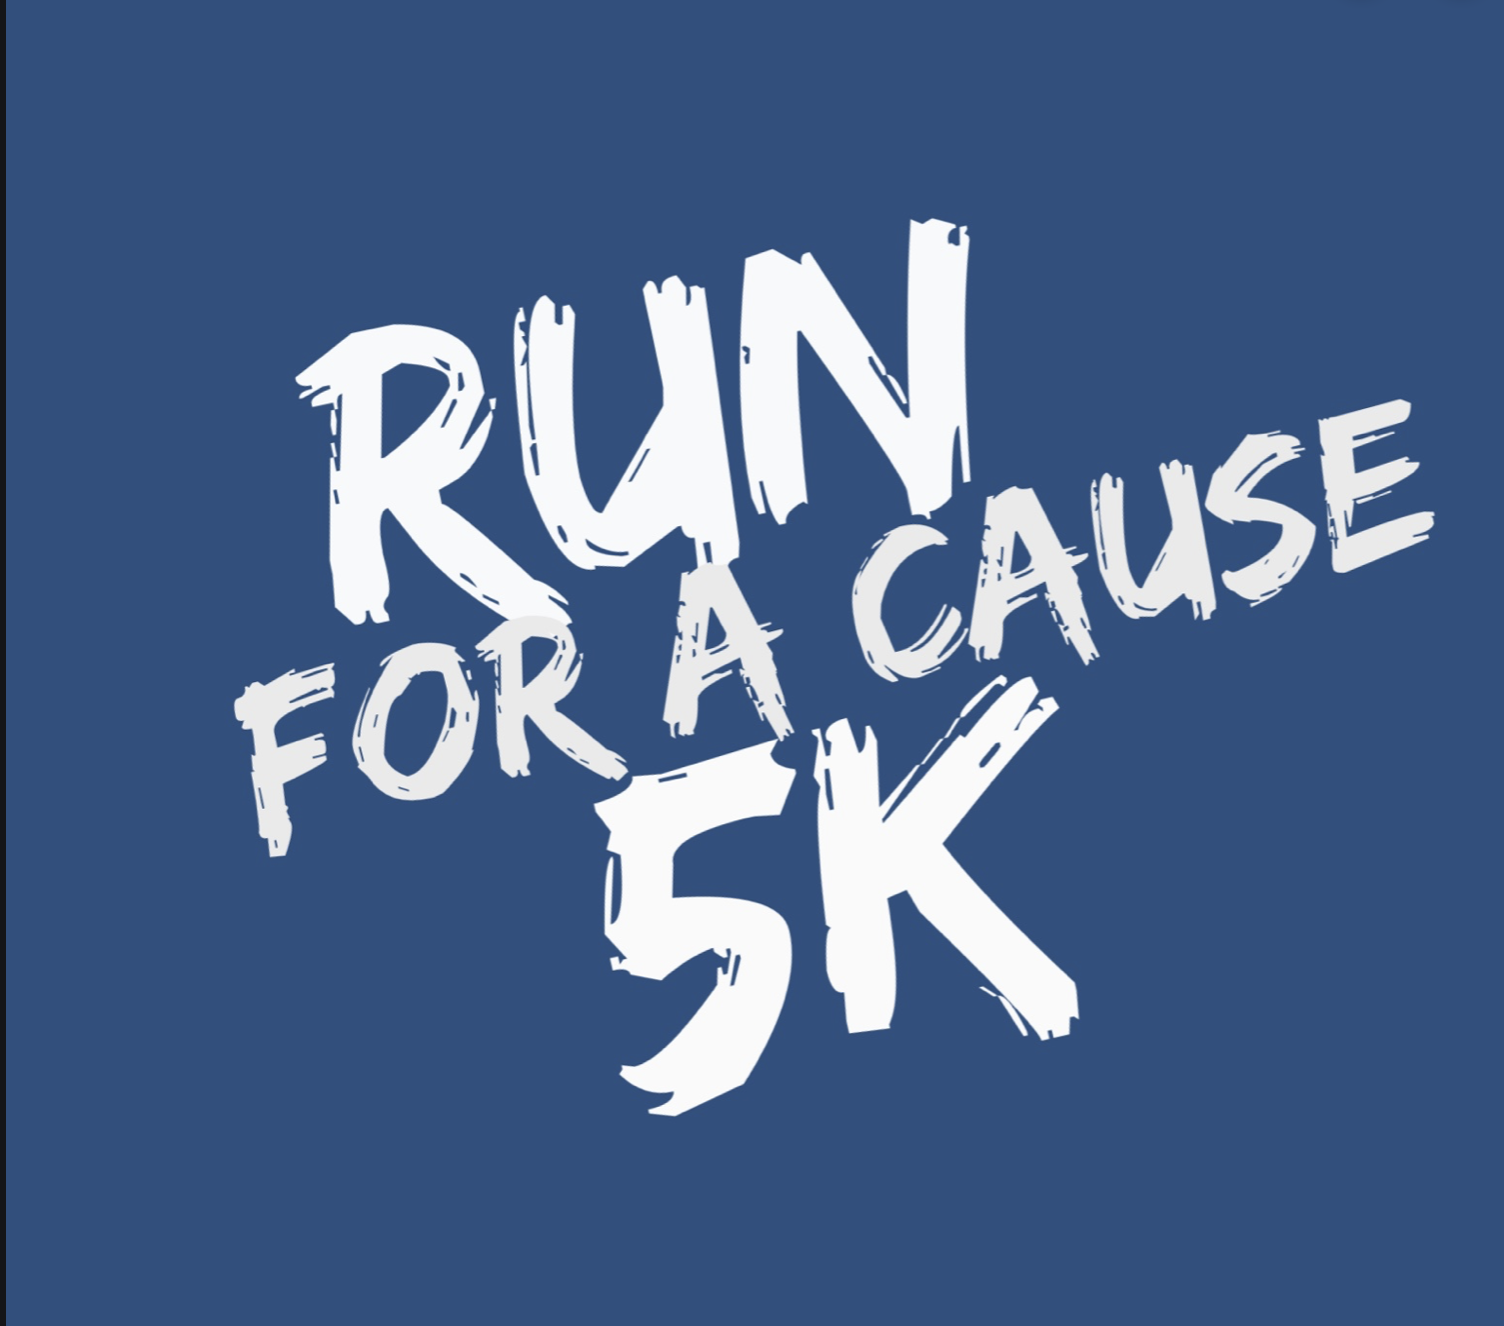 How does a run for awareness help?